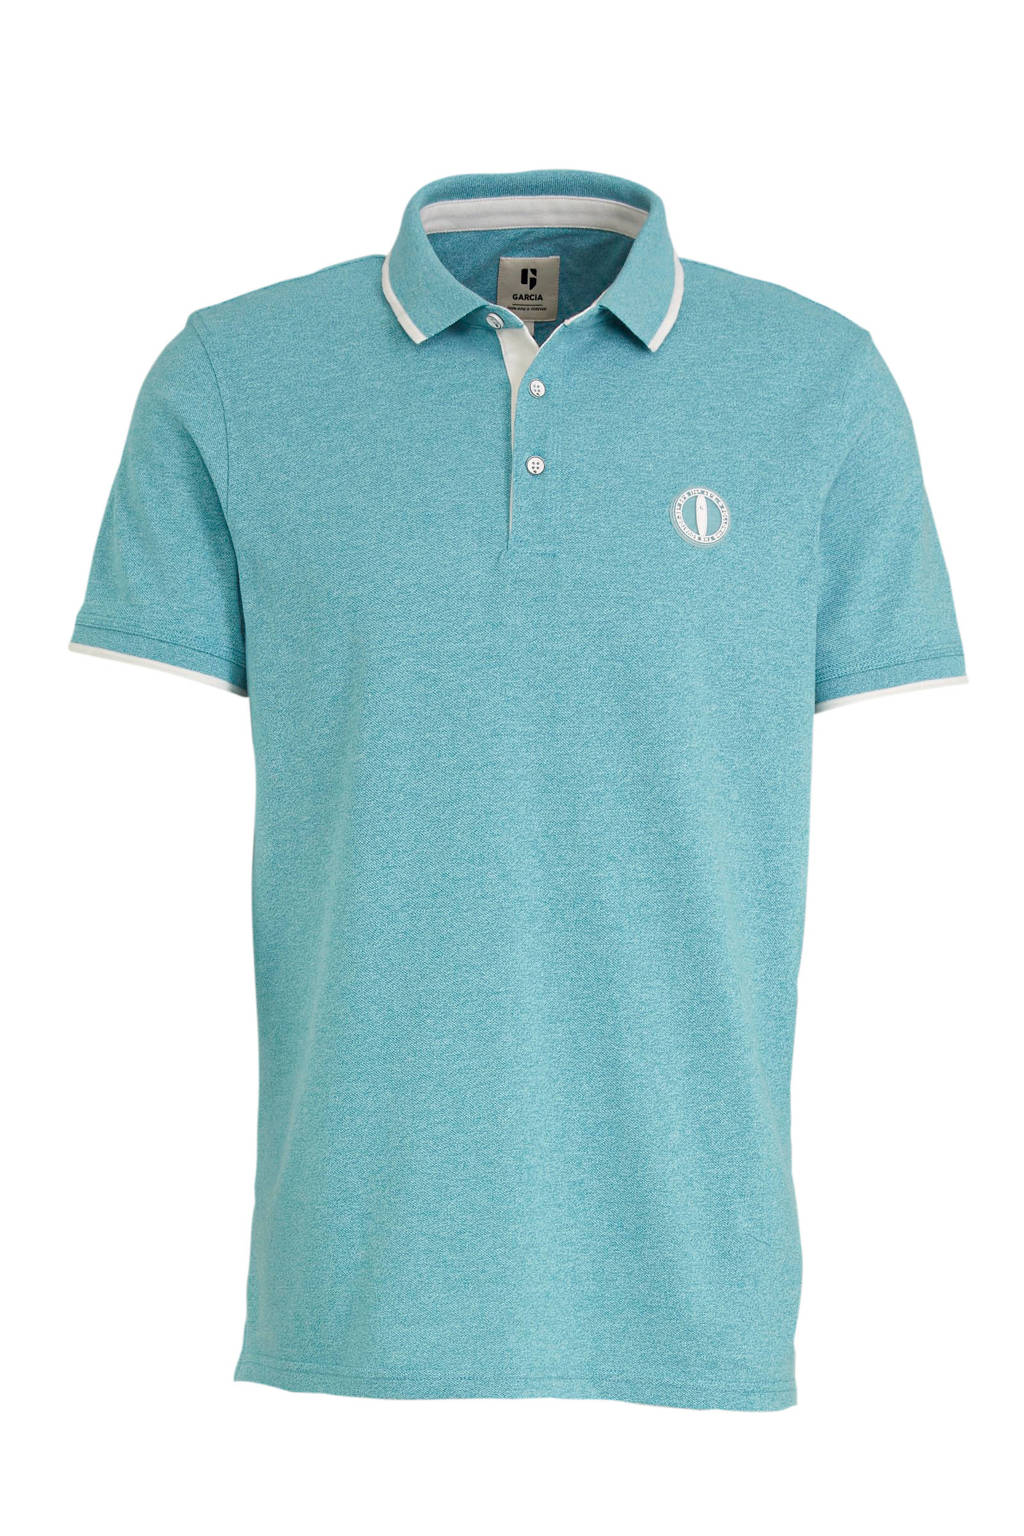 Garcia slim fit polo turquoise, Turquoise